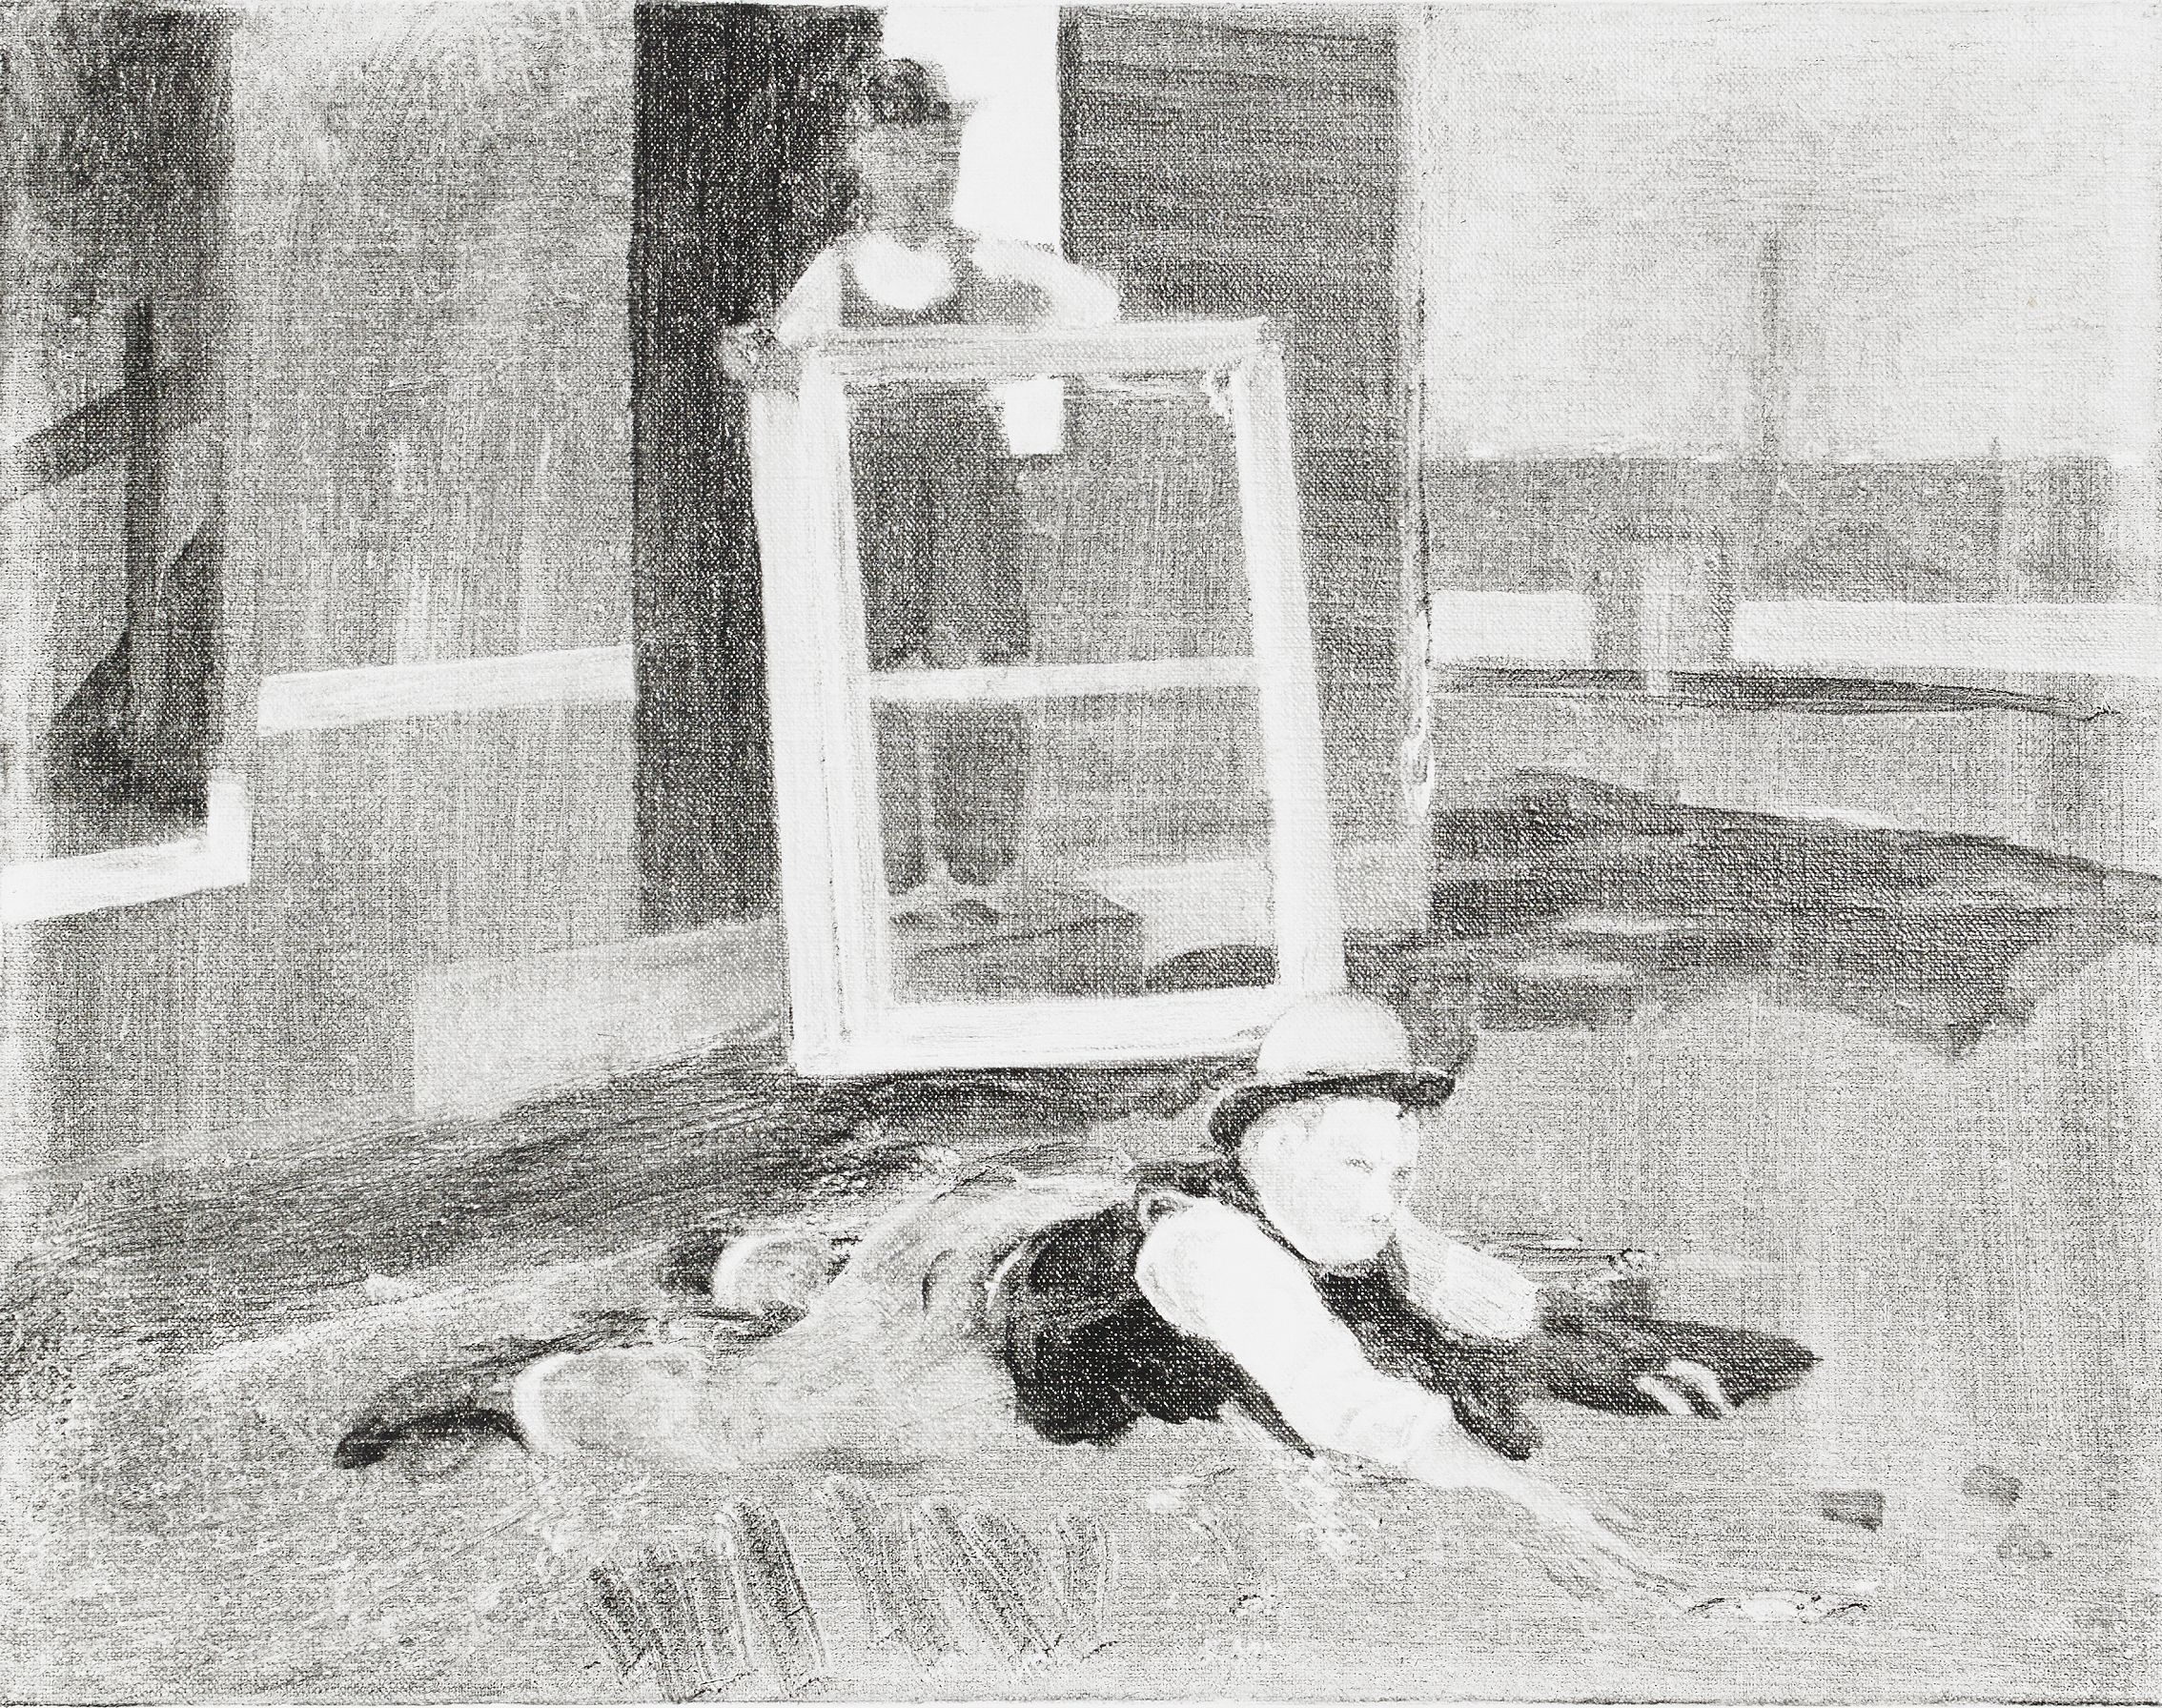 Cecilia Edefalk, Untitled (Sketches for a painting